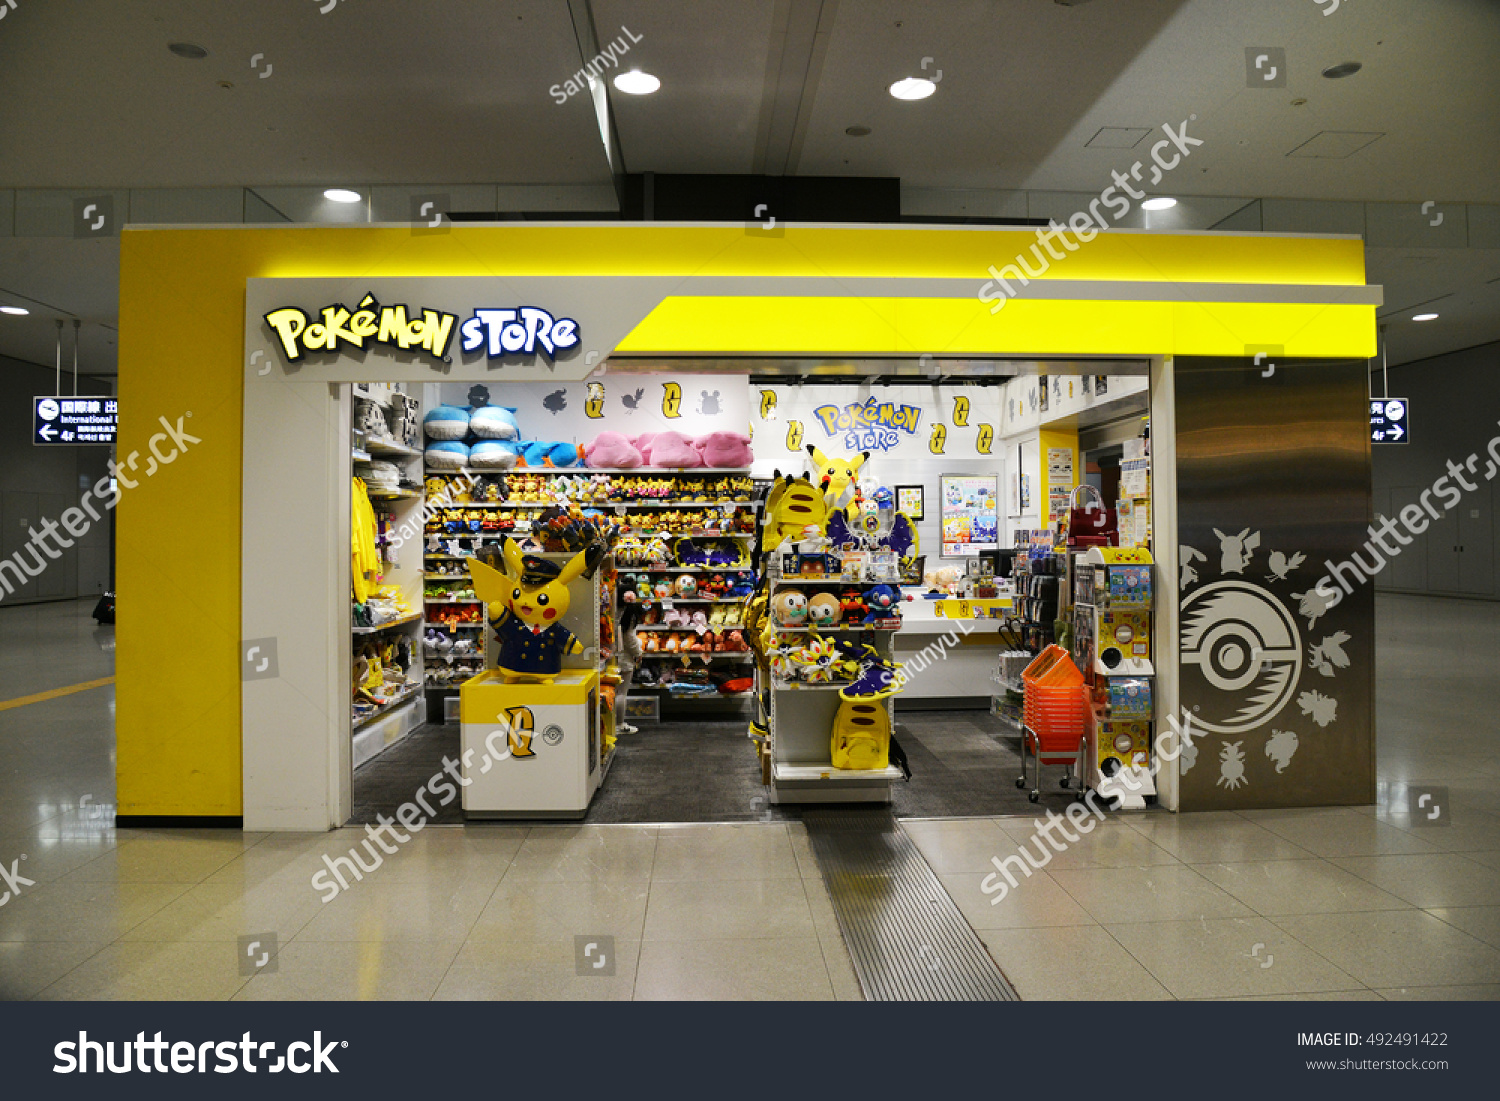 Osaka Japan October 1st 2016 Pokemon Stock Photo 492491422